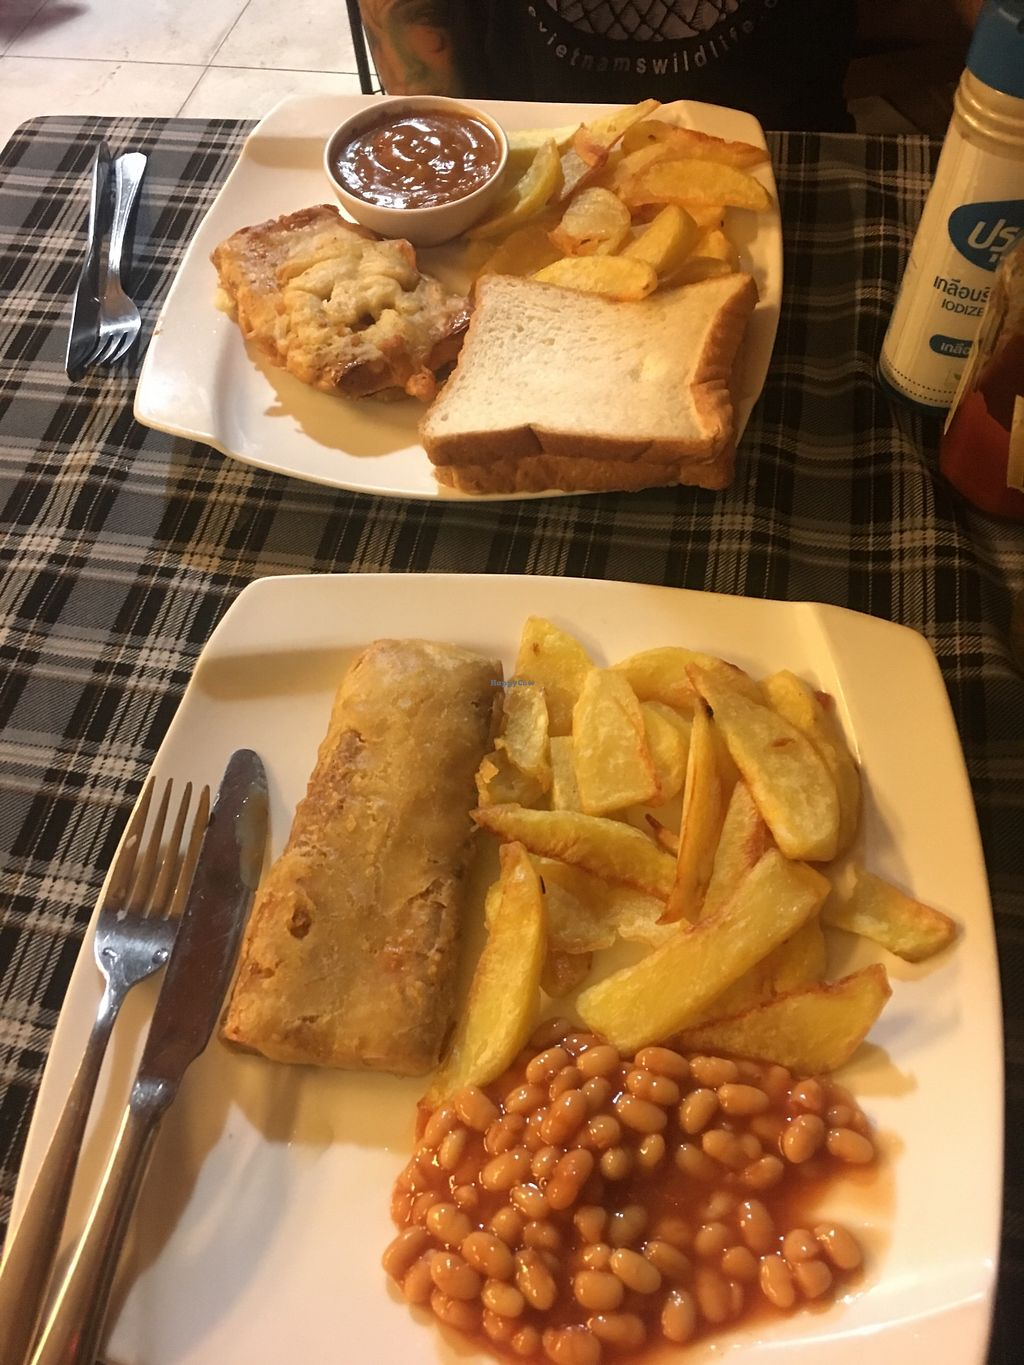 """Photo of Bookworm's Coffee  by <a href=""""/members/profile/MollyKennedy"""">MollyKennedy</a> <br/>Vegan fish and chips! <br/> January 21, 2018  - <a href='/contact/abuse/image/52690/349421'>Report</a>"""